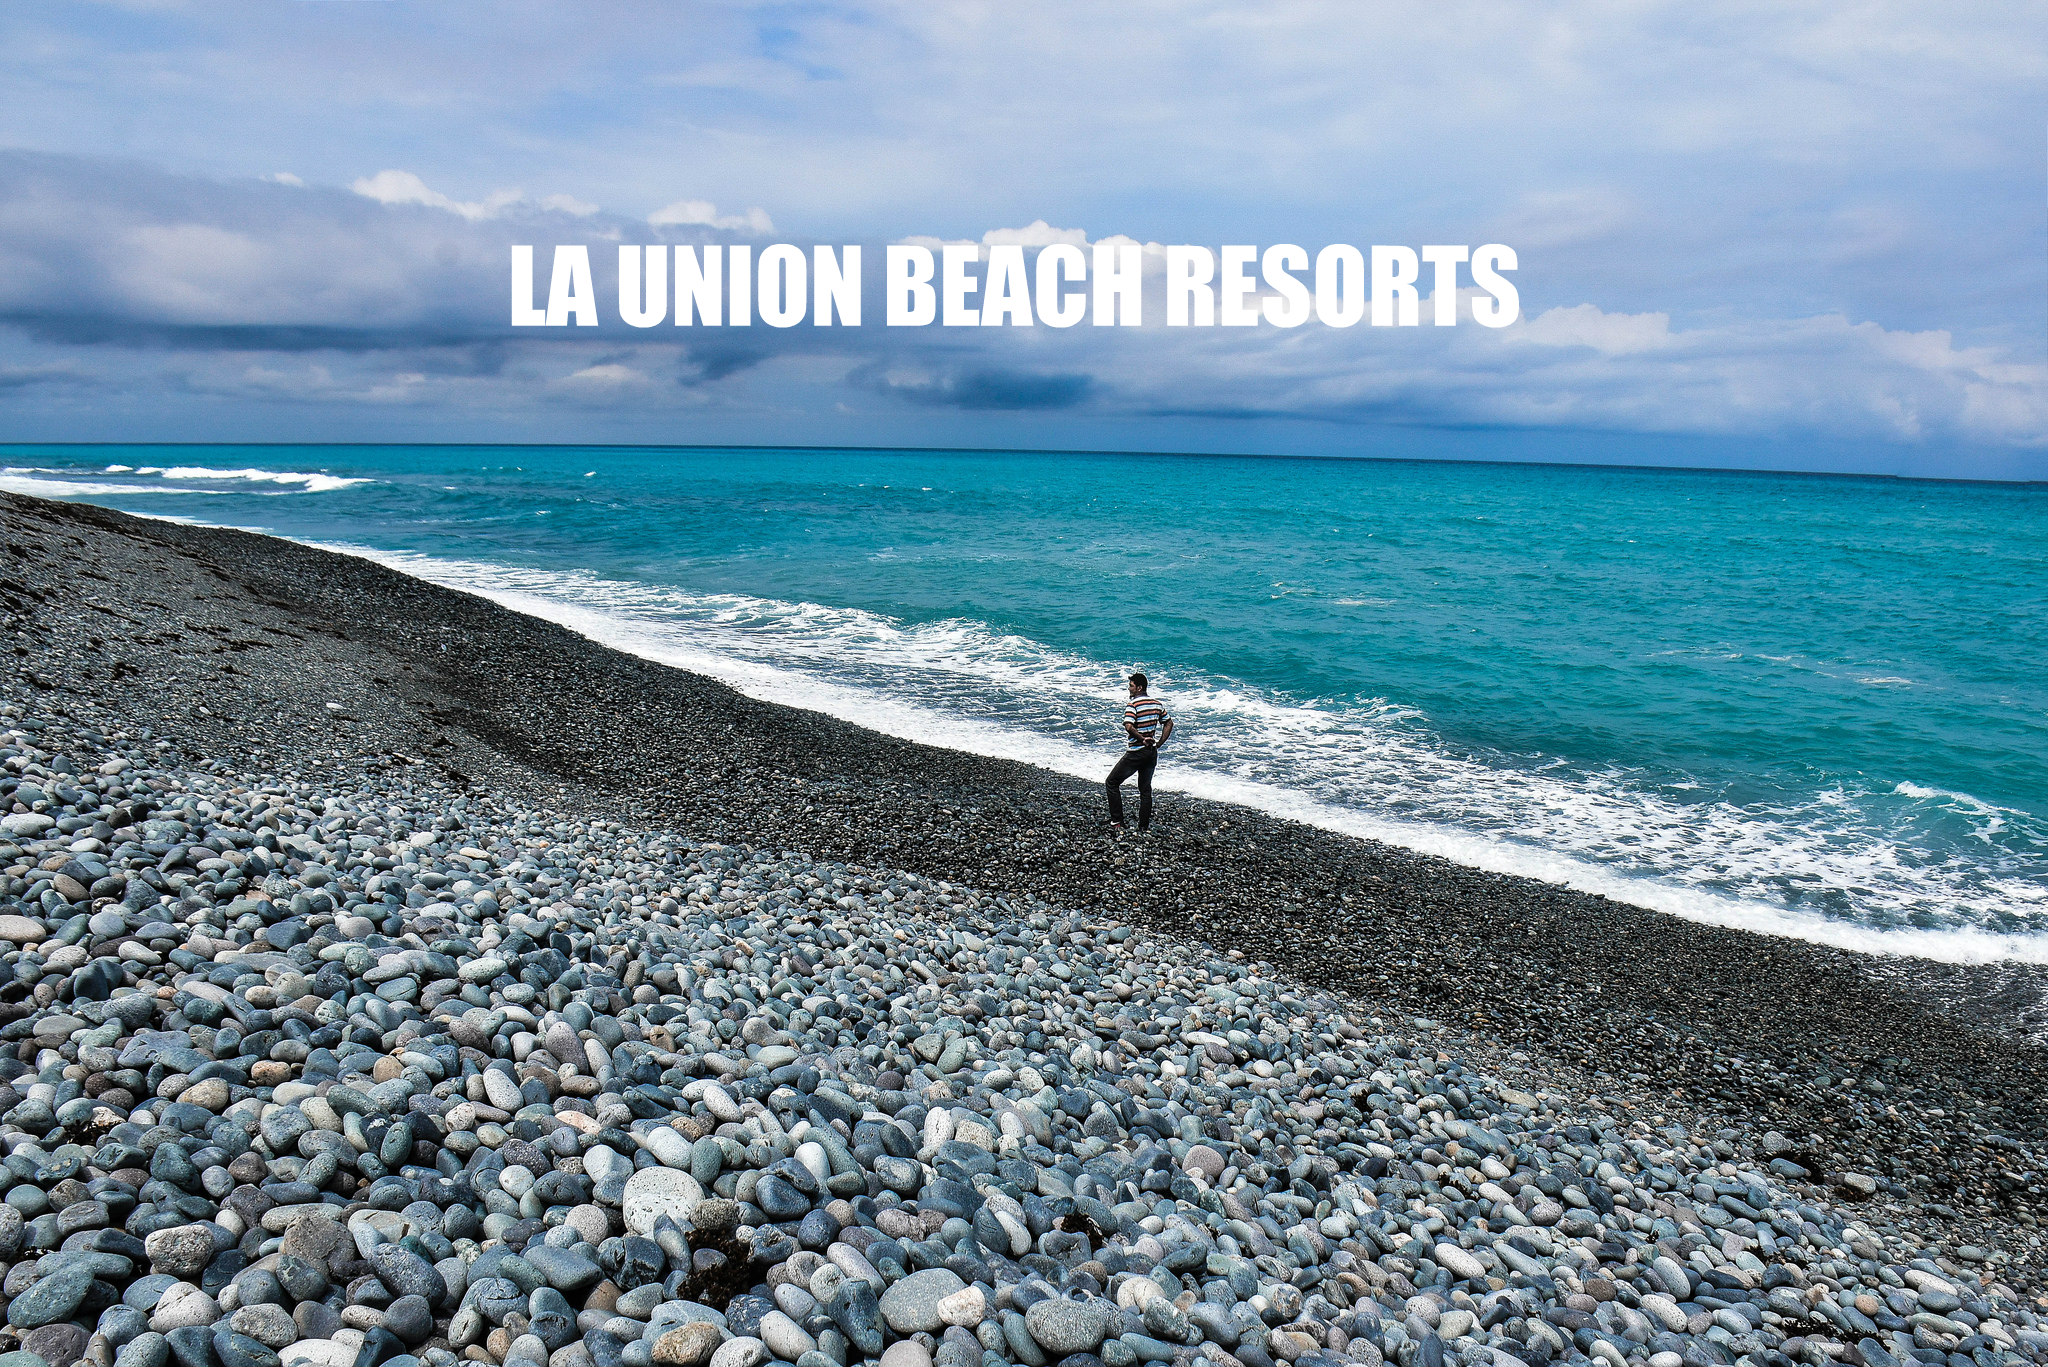 LA UNION BEACH RESORTS